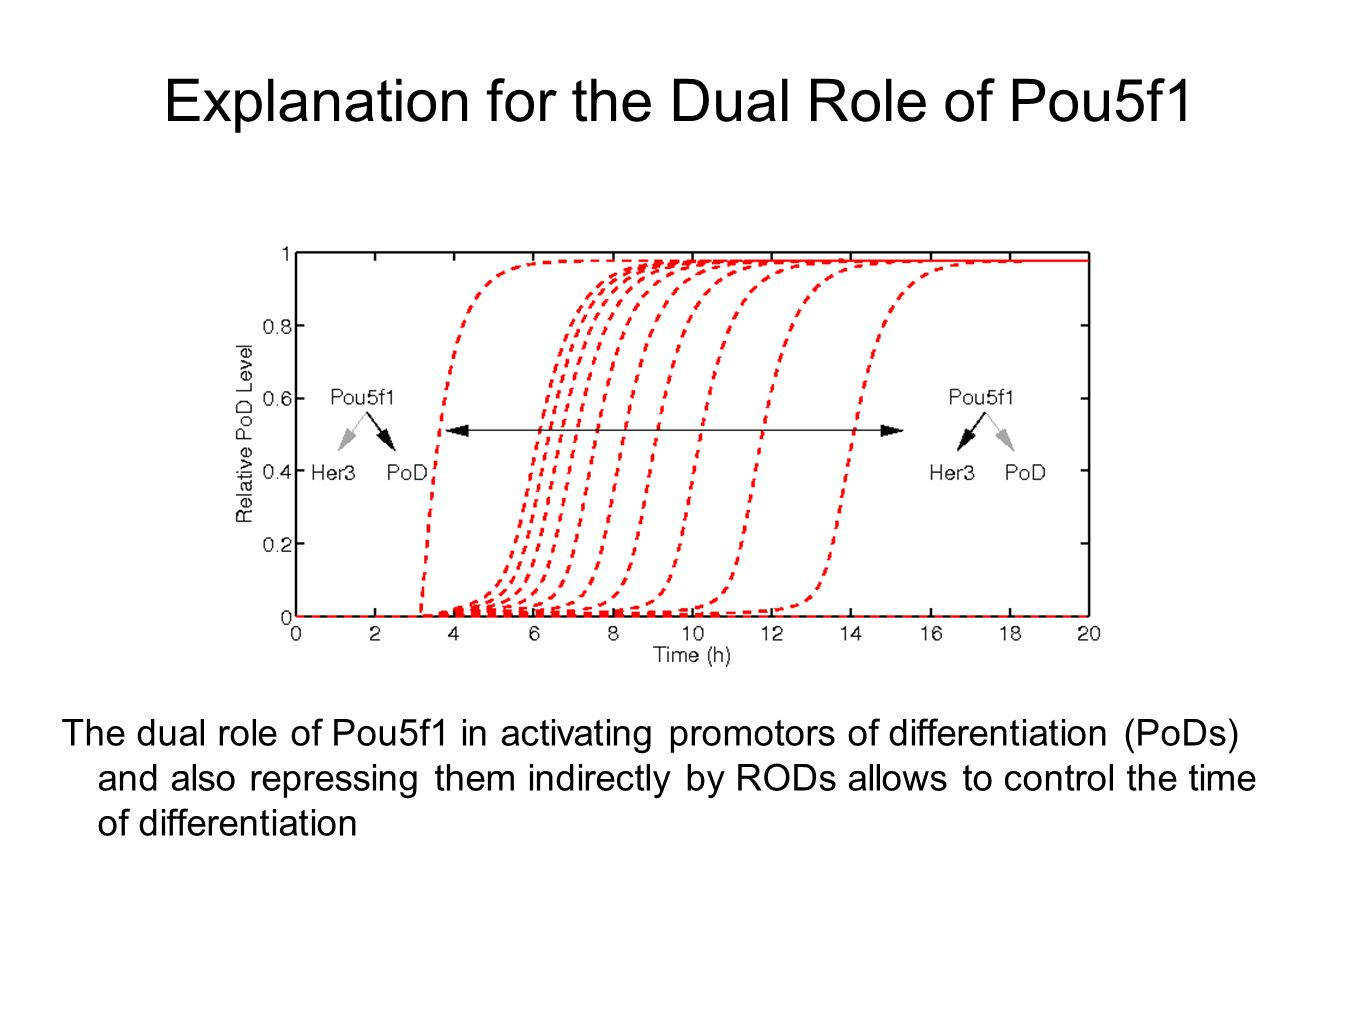 Explanation for the Dual Role of Pou5f1 The dual role of Pou5f1 in activating promotors of differentiation (PoDs) and also repressing them indirectly by RODs allows to control the time of differentiation